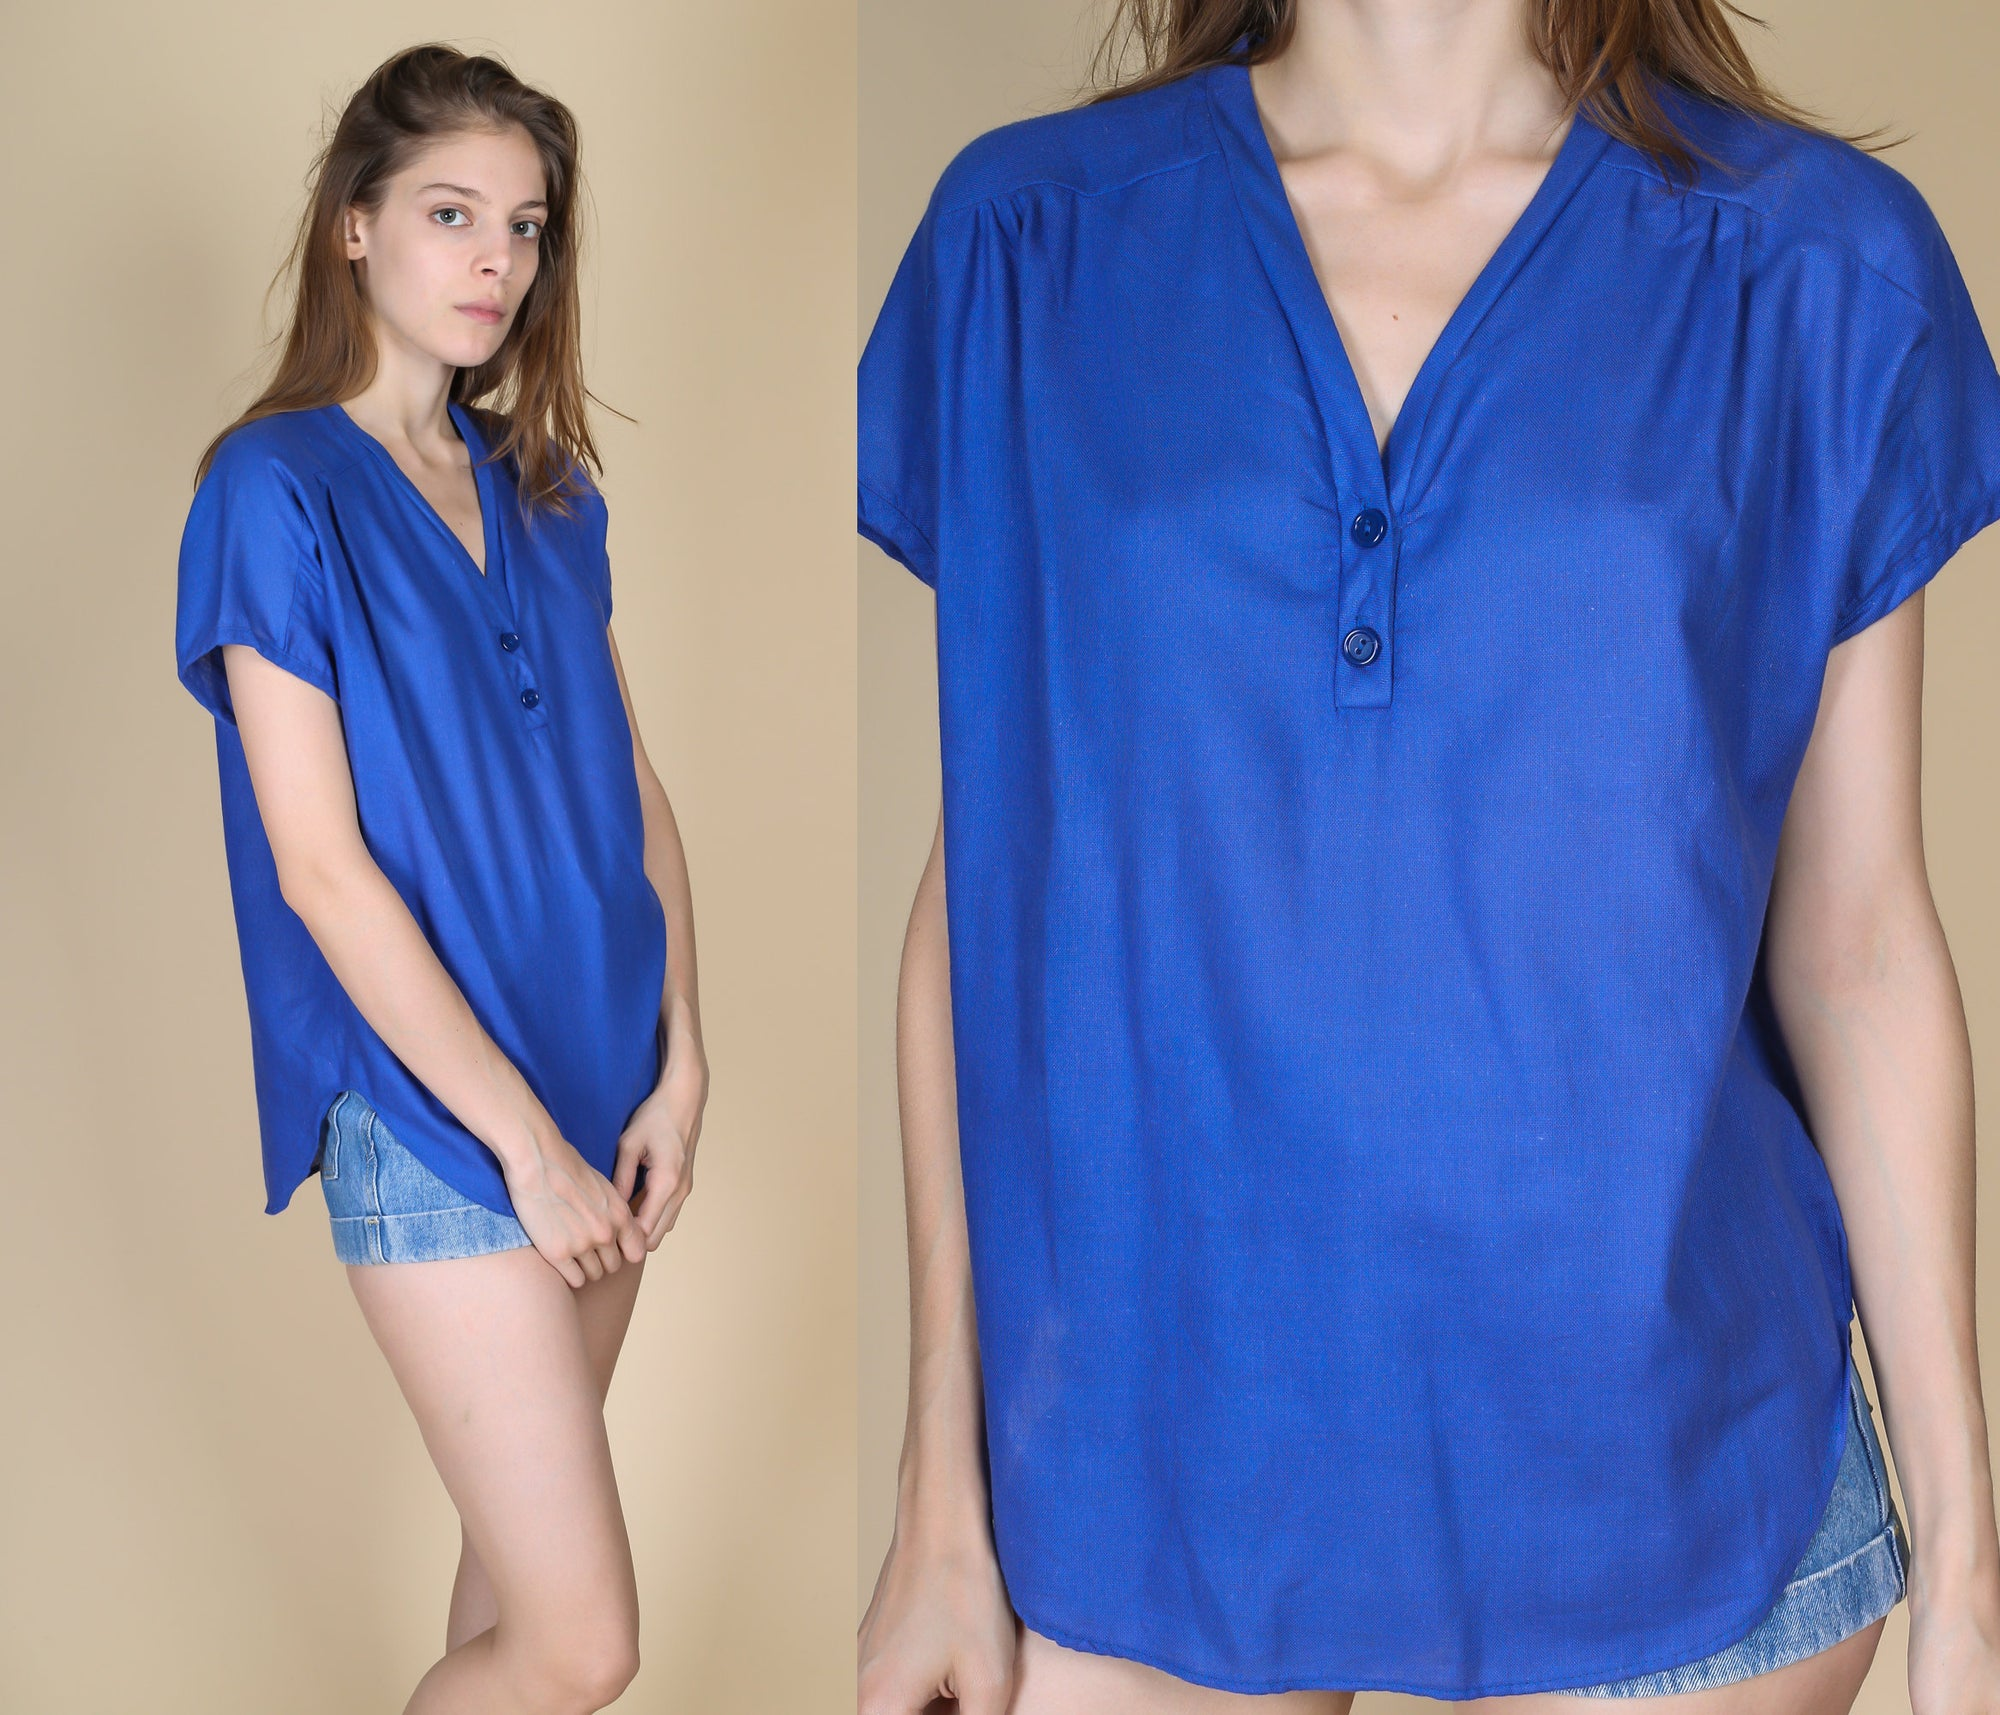 70s Blue V Neck Blouse - Large